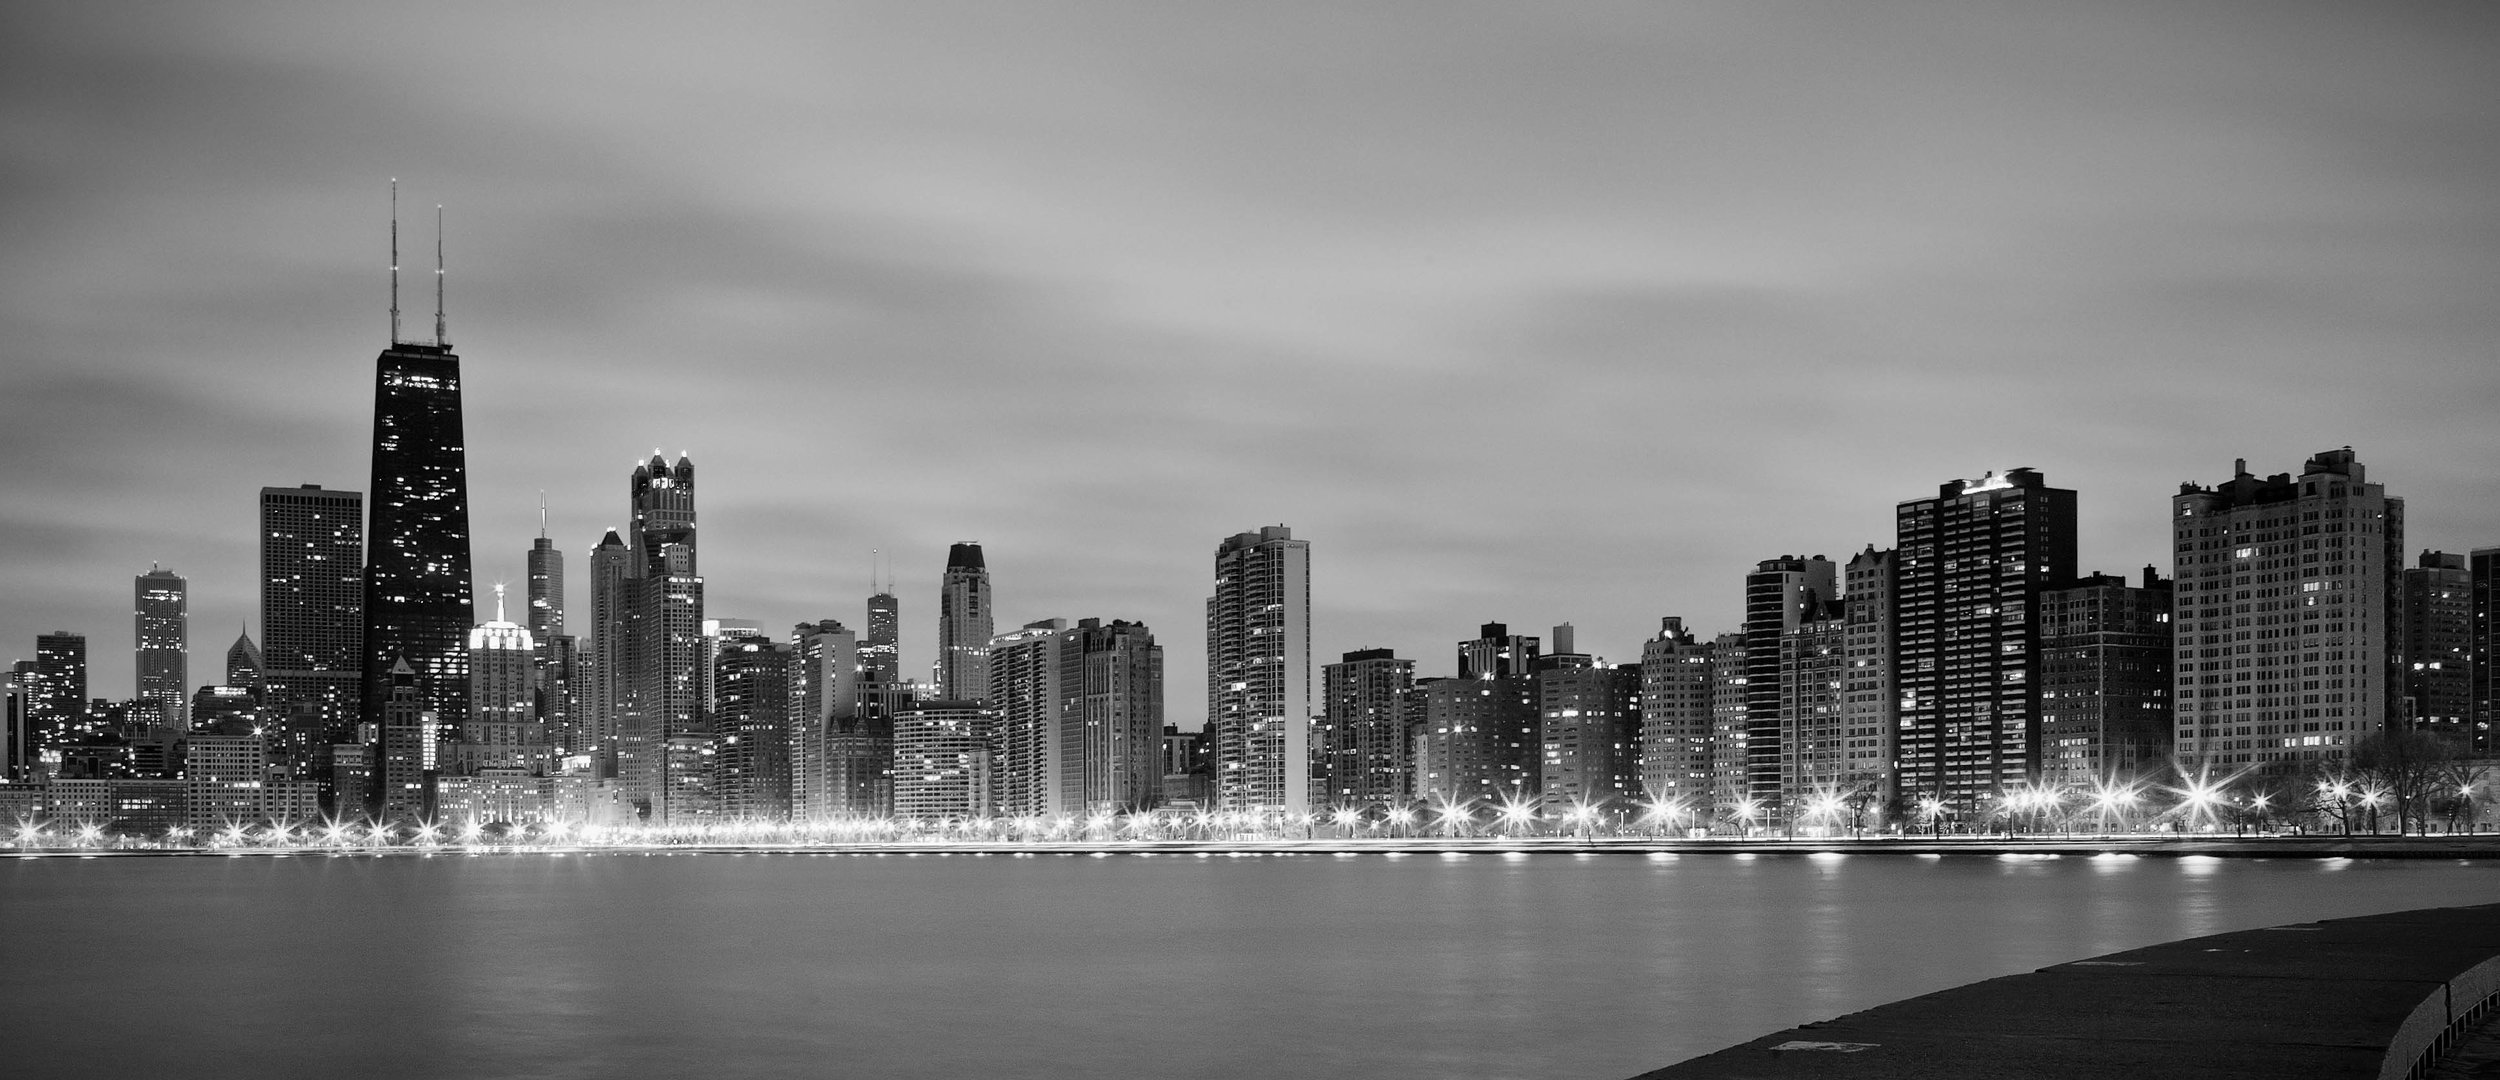 chicago-skyline-black-white.jpg